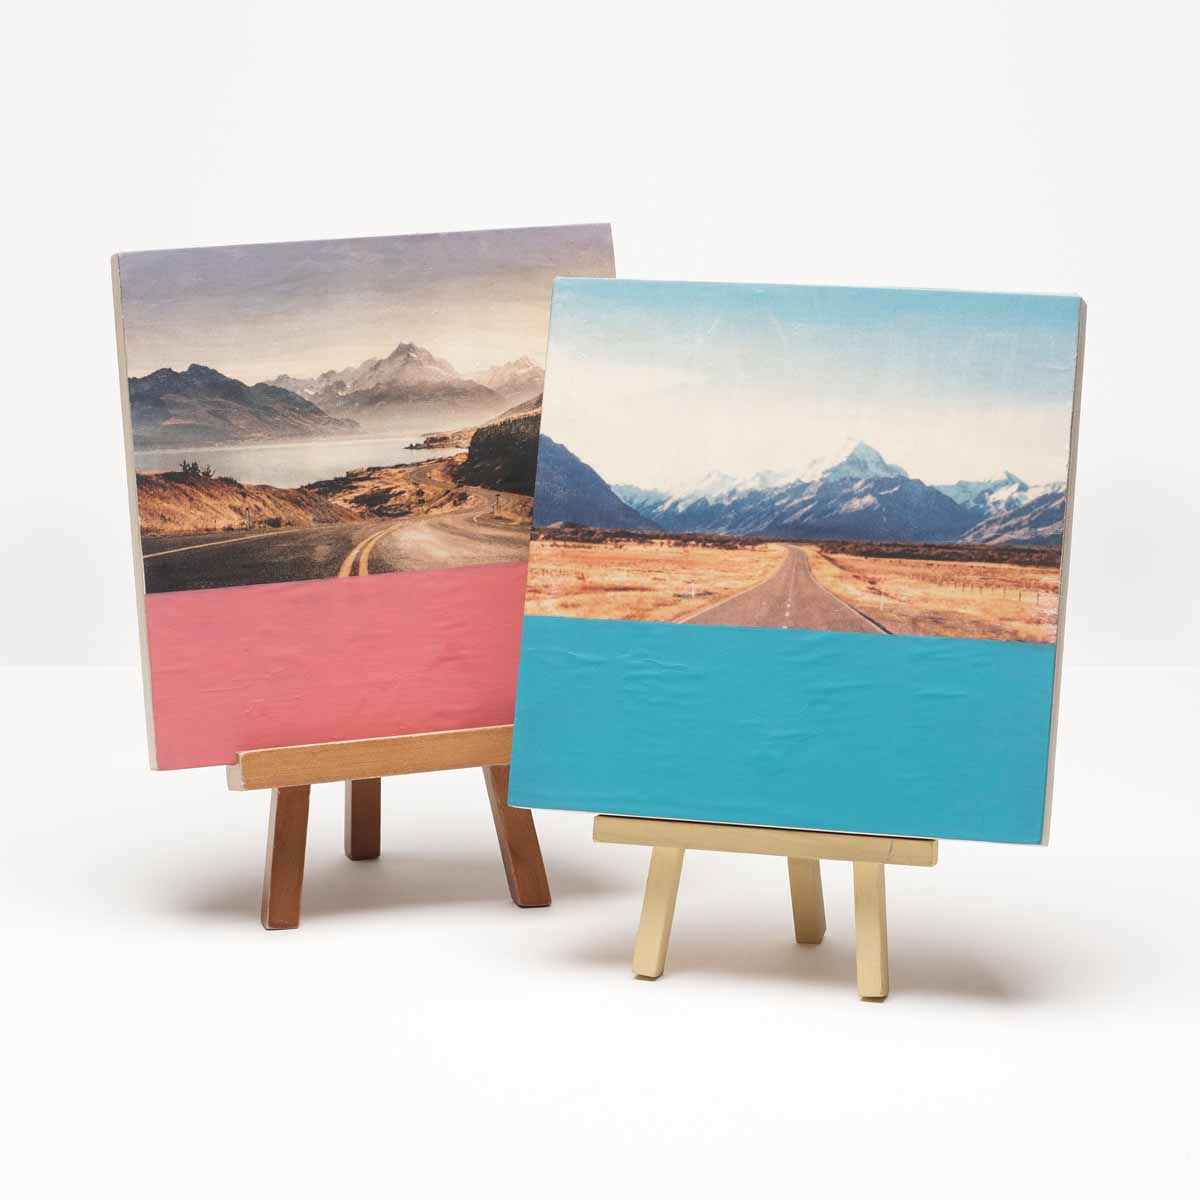 Photo Transfer Dipped Canvases